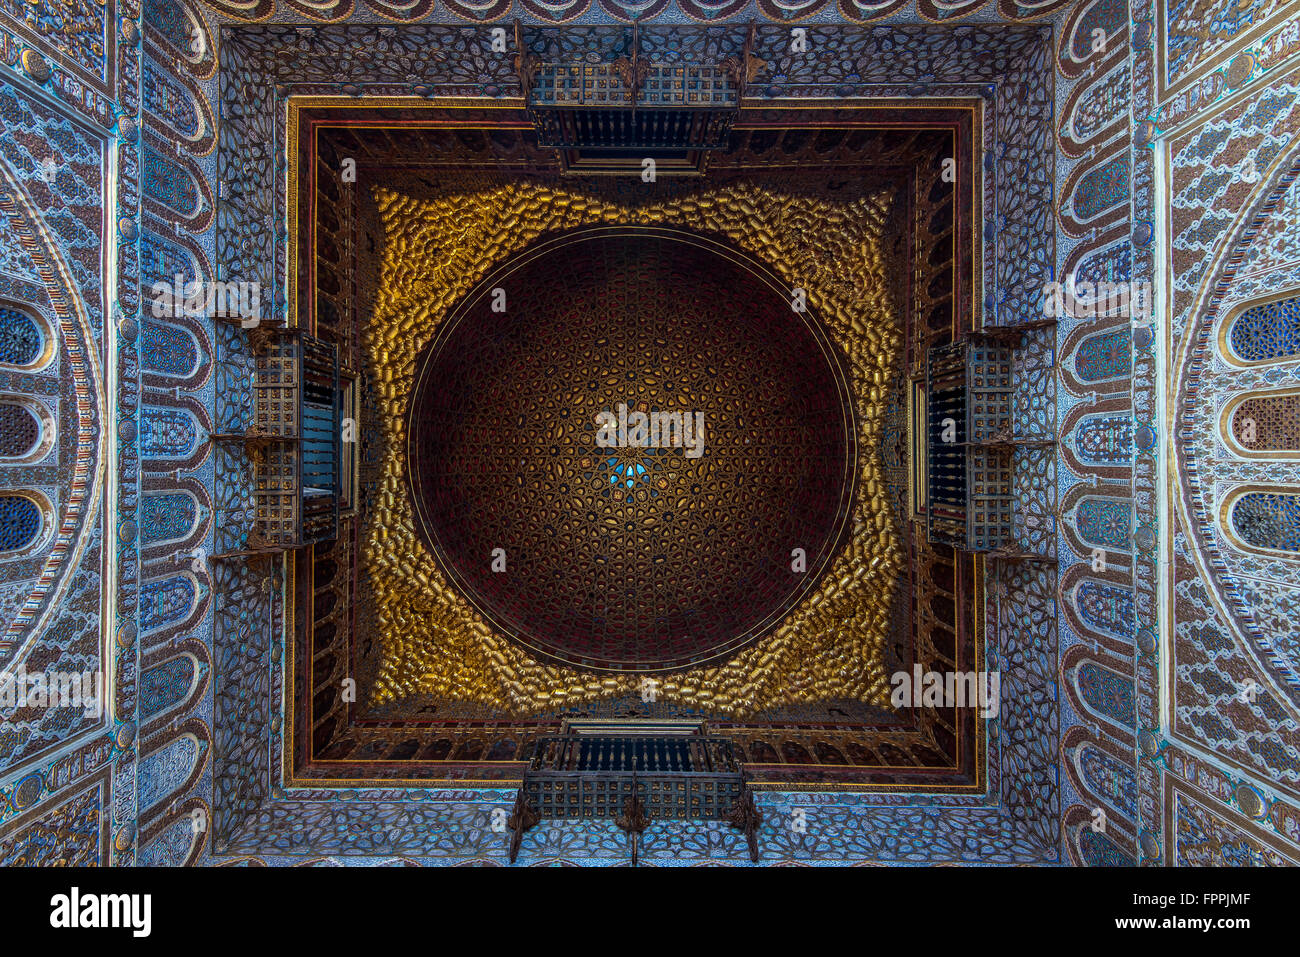 The Hall of Ambassadors covered by a majestic dome of gilded wood, Alcazar, Seville, Andalusia, Spain Stock Photo